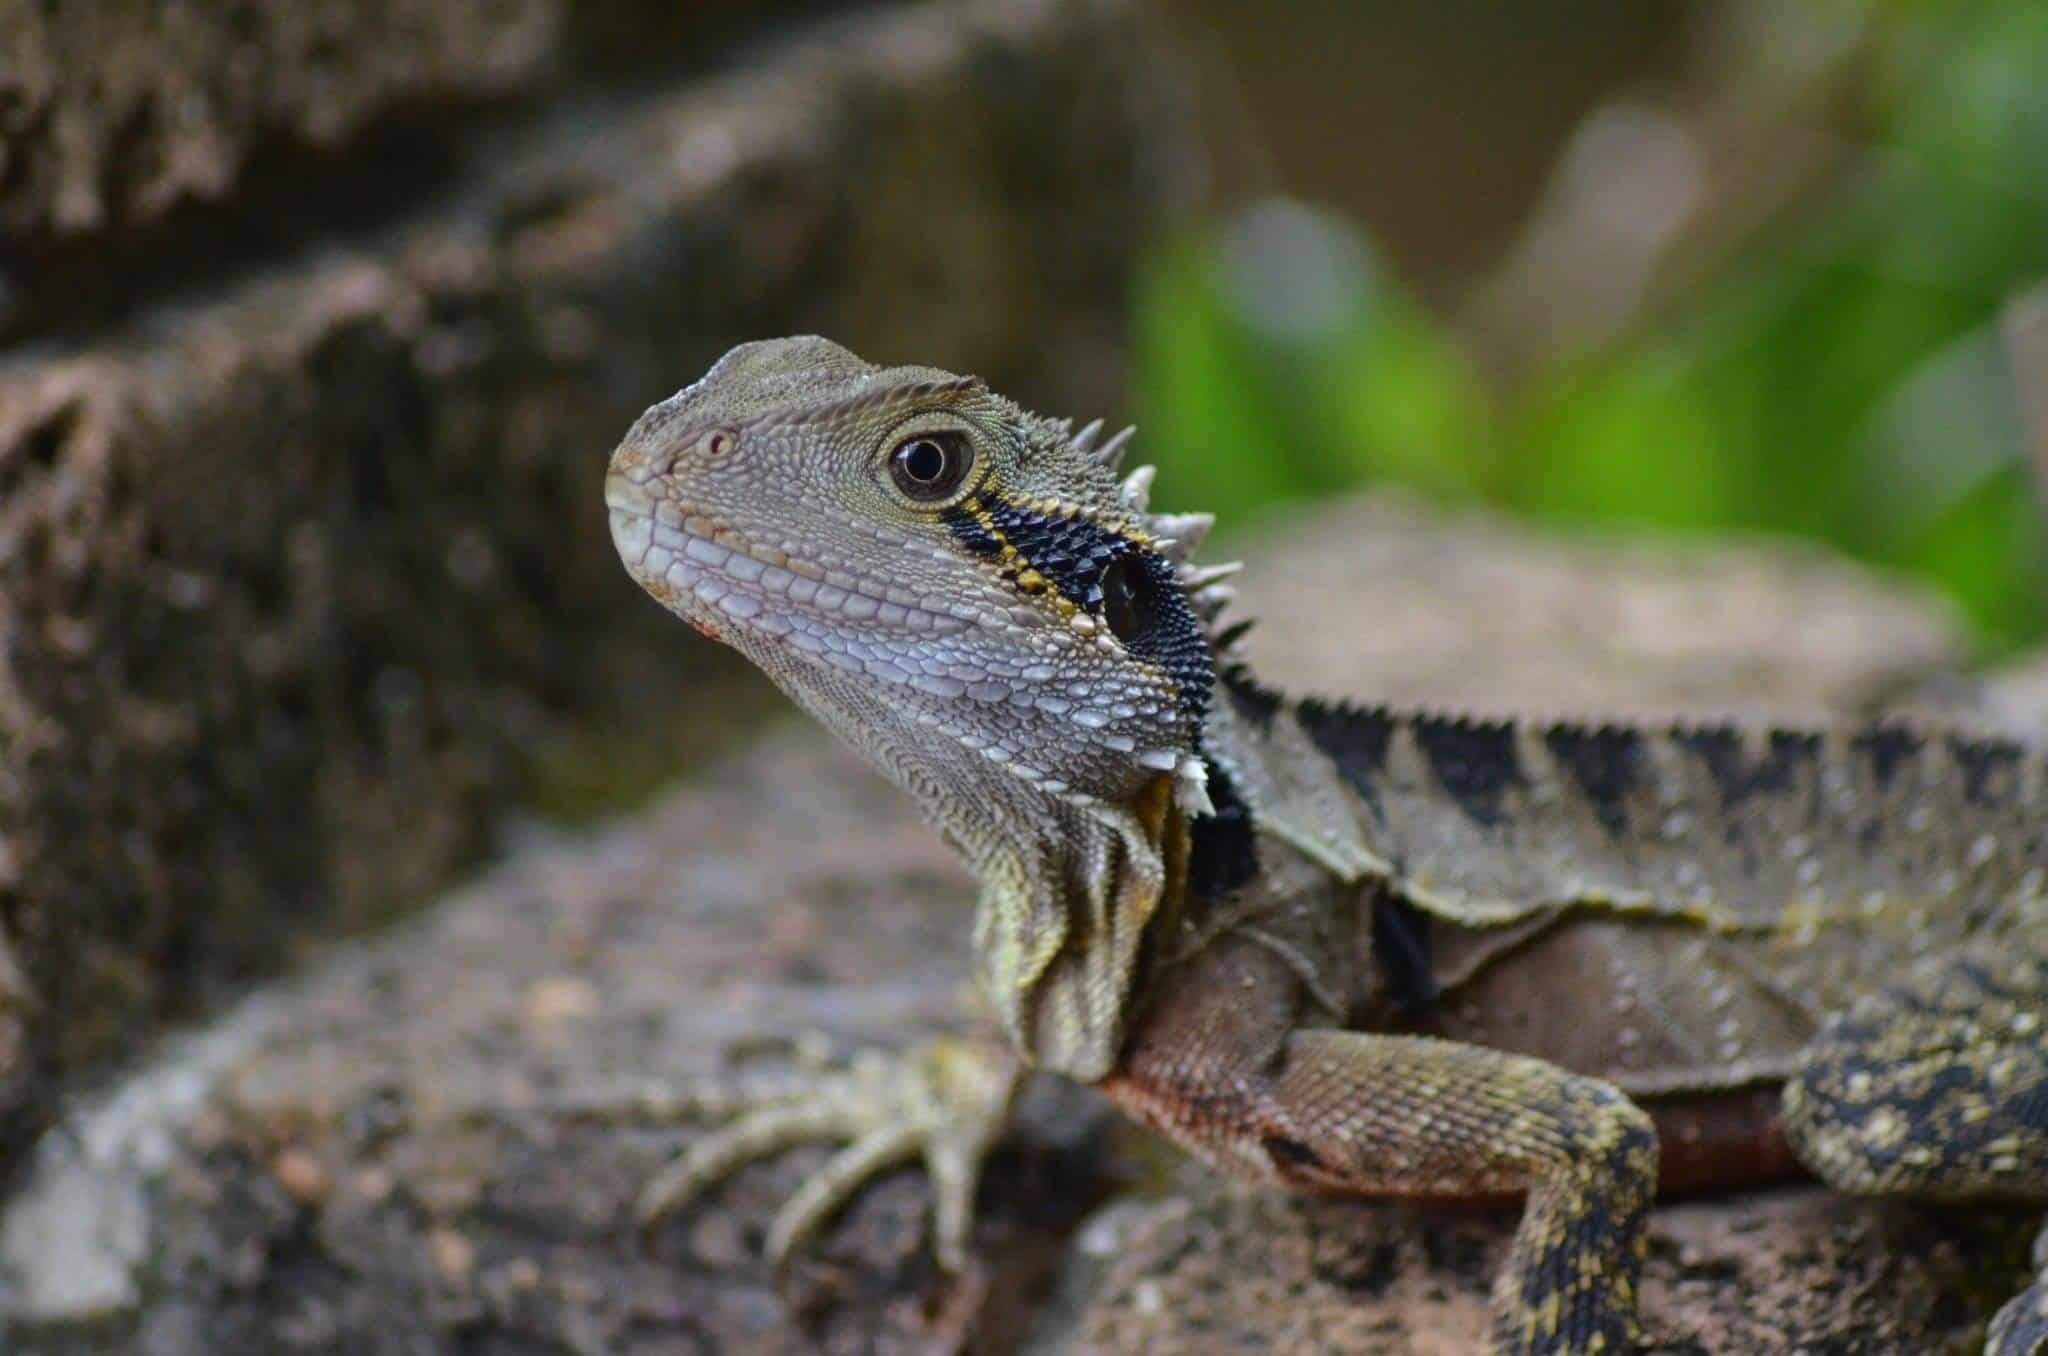 Winsome Cheap Easy Pets To Take Care Of Beginners Vetbabble List Bearded Dragon Care Guide Bearded Dragon Essential Guide Easy Pets To Take Care bark post Easy Pets To Take Care Of